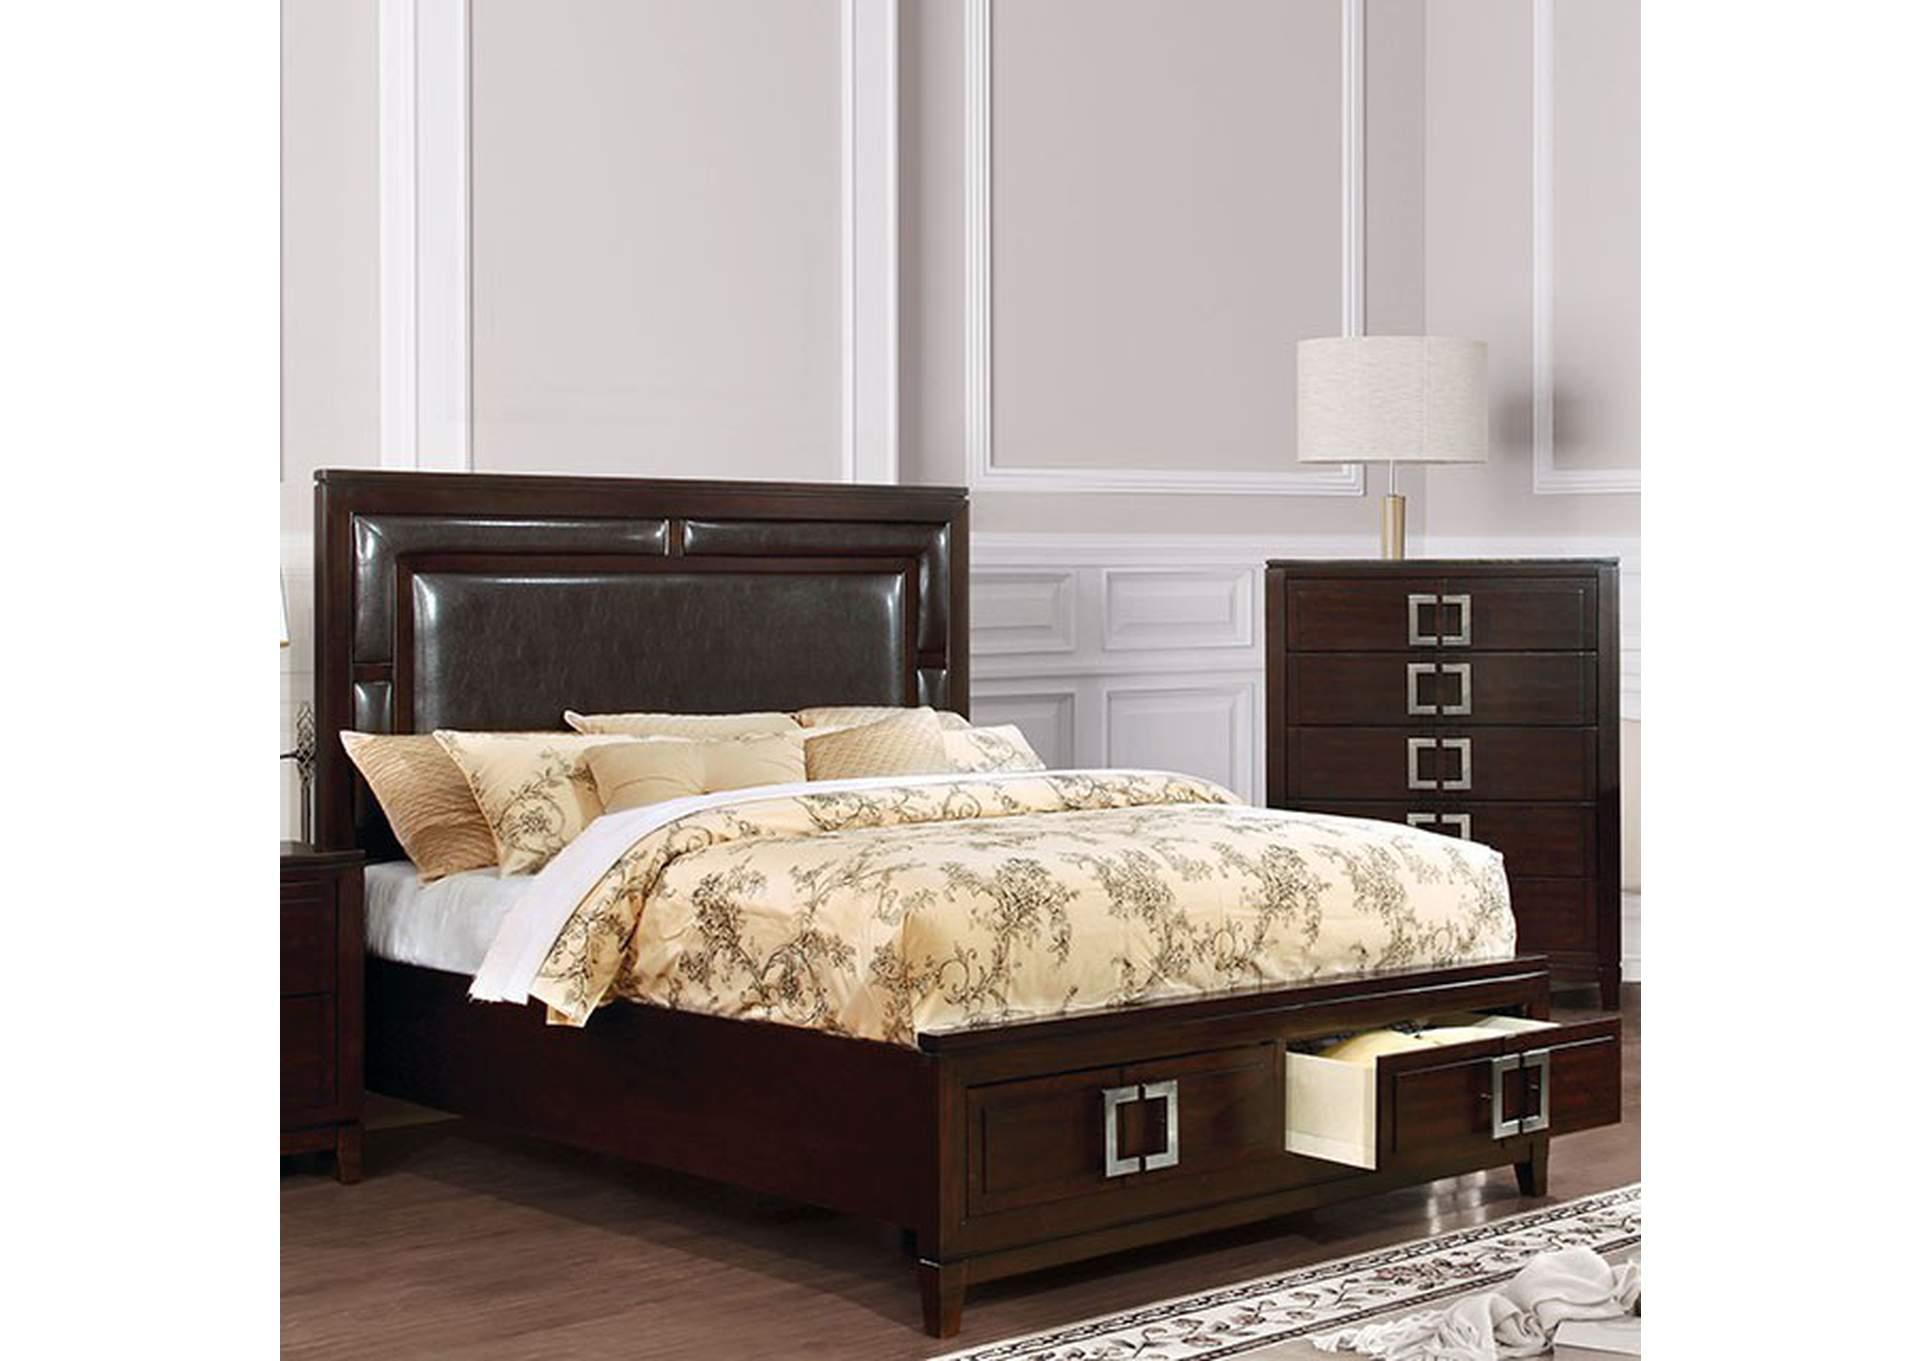 Balfour Brown Queen Storage Bed,Furniture of America